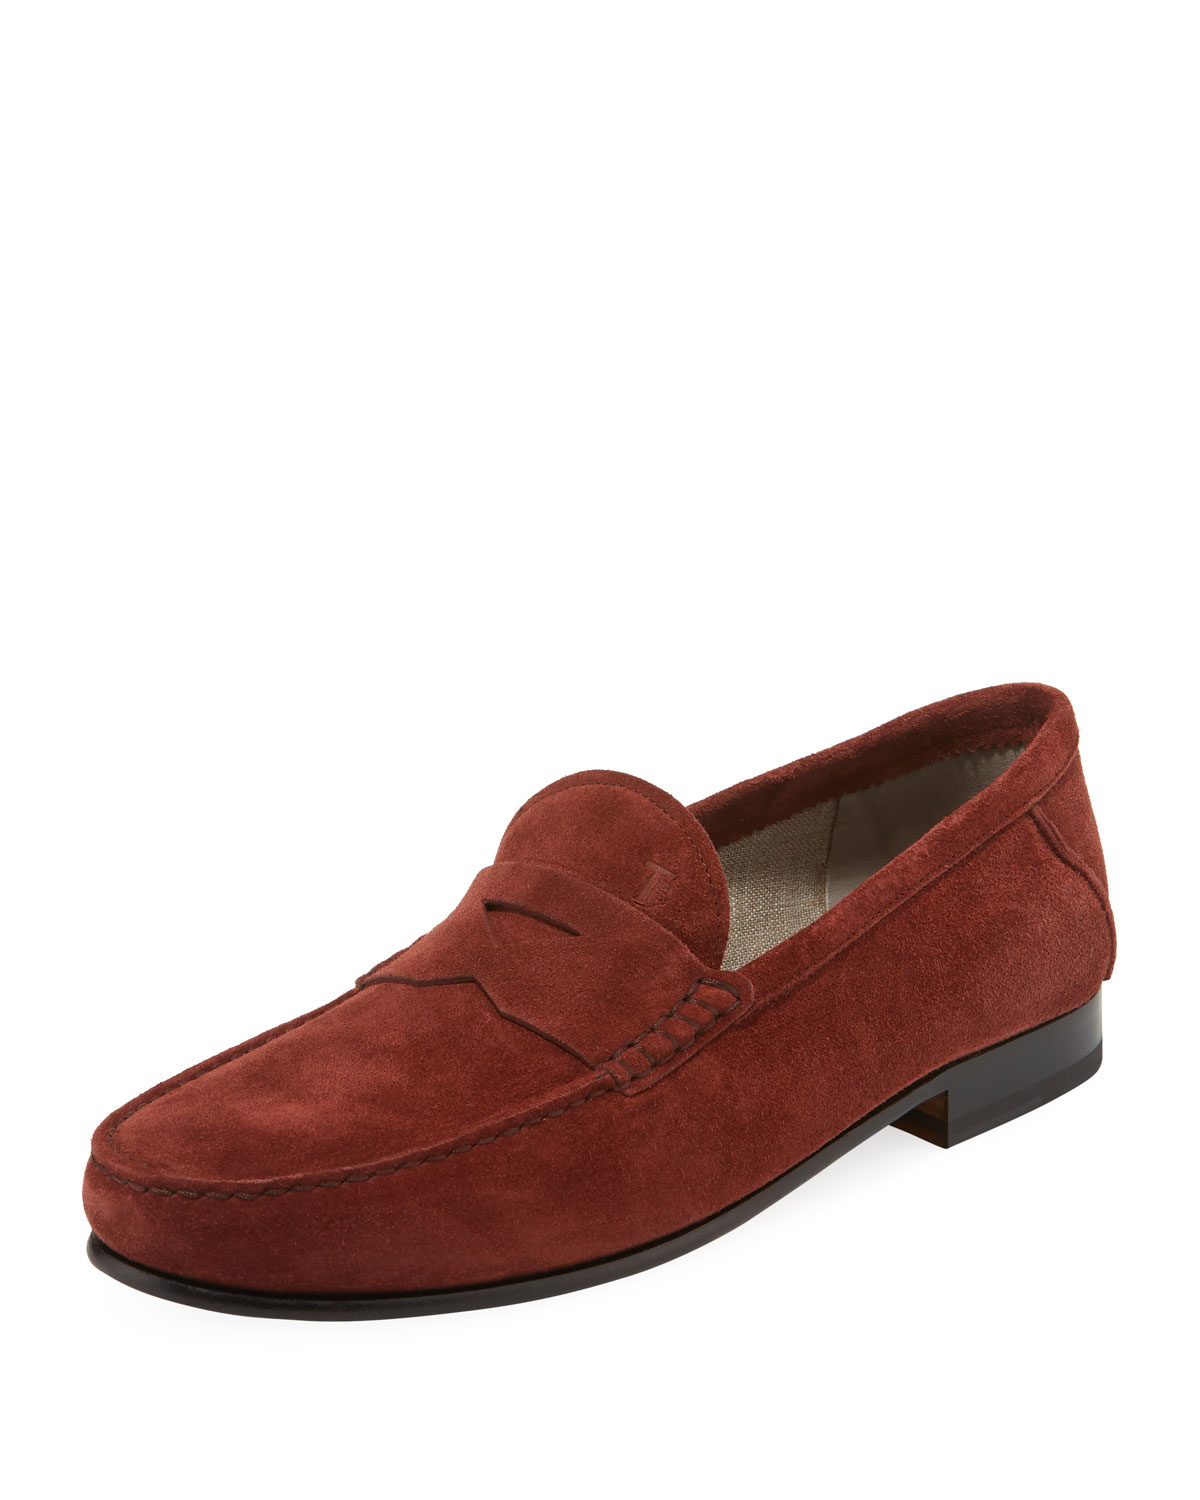 1fa94a1df75 Tod s Men s Suede Penny Loafer